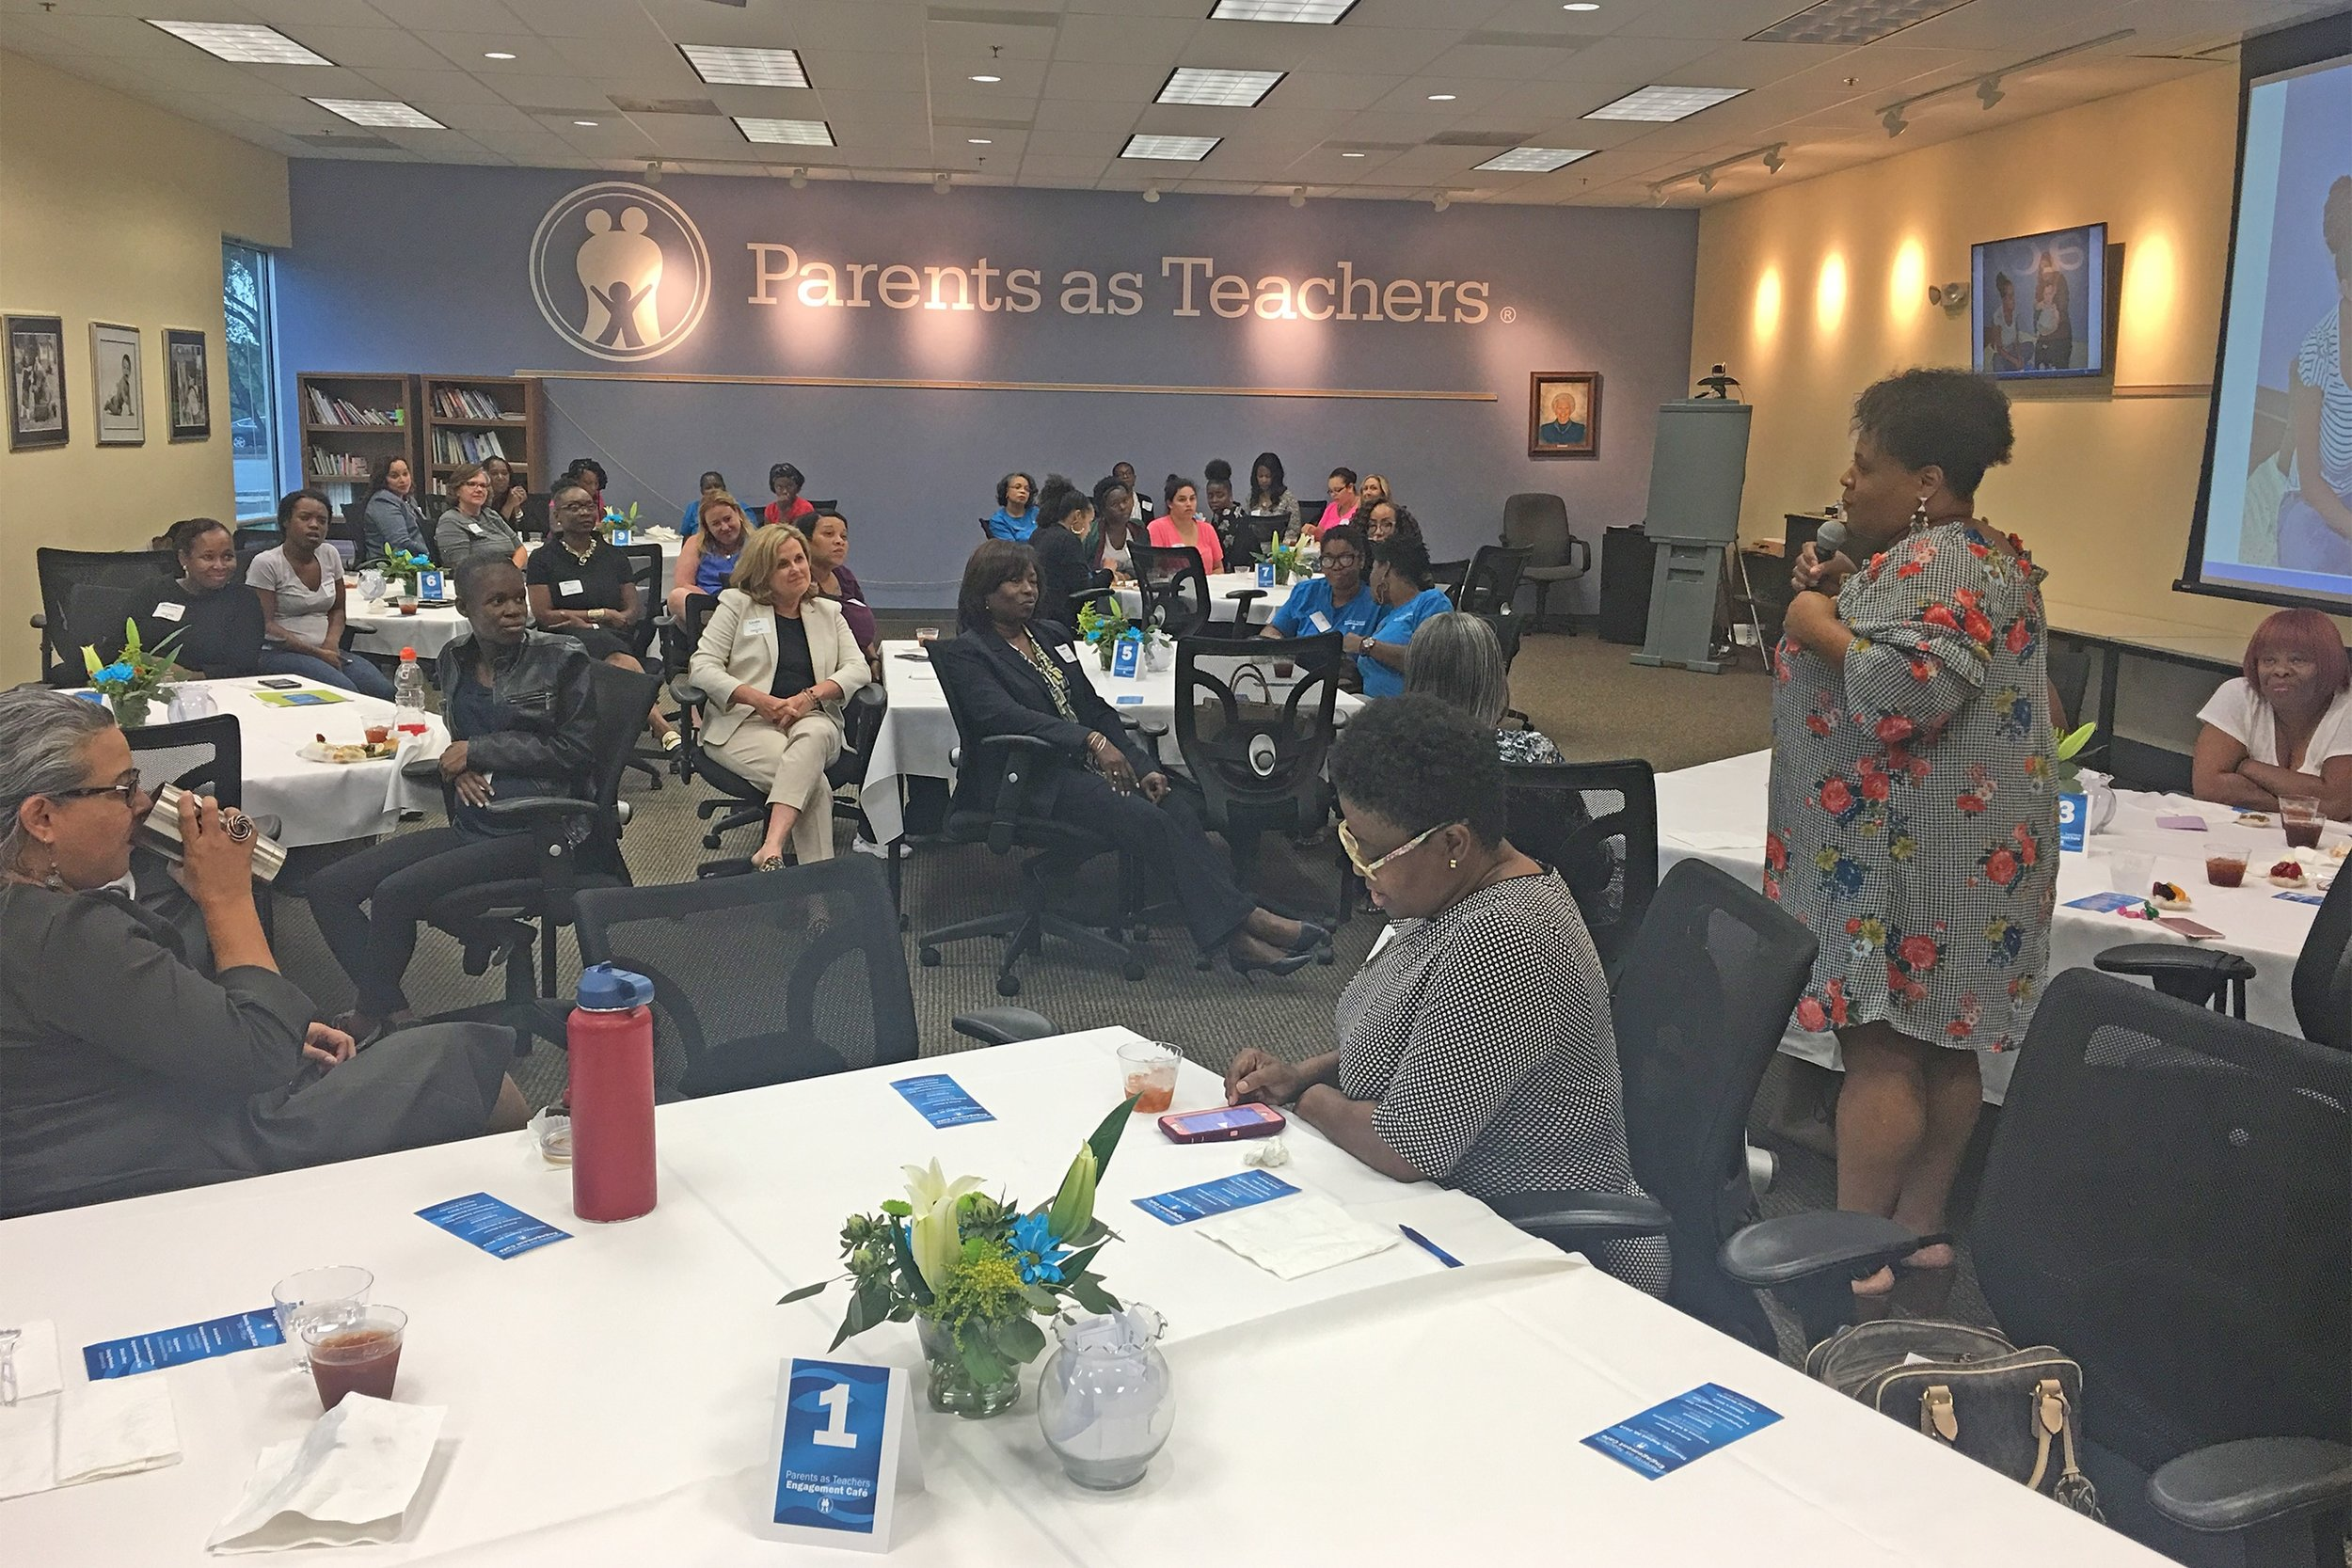 Ellicia Lanier, (standing) an associate professor at St. Louis Community College at Florissant Valley, addresses Parents as Teachers inaugural meeting of the Professional Women's Engagement Café as part of PAT's Women's Partnership Network.